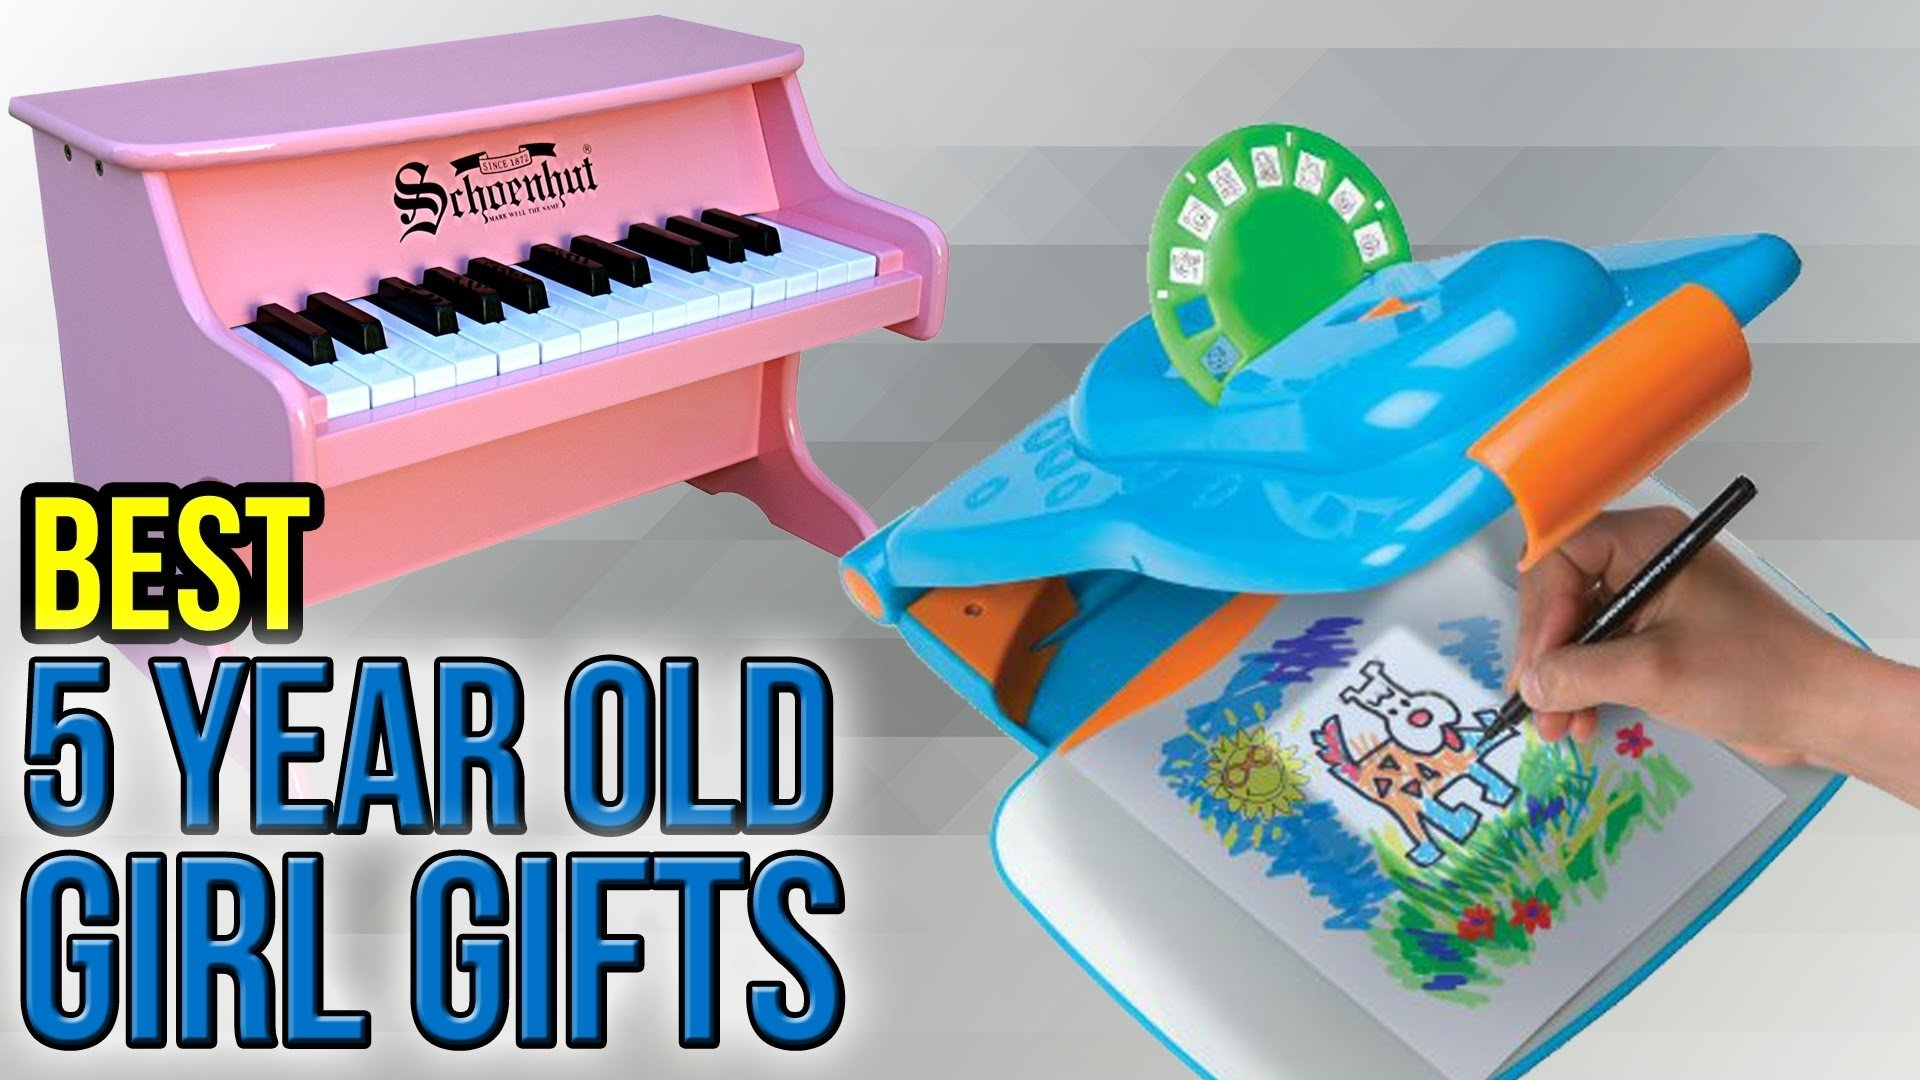 10 Fabulous 5 Year Old Girl Gift Ideas 10 best 5 year old girl gifts 2017 youtube